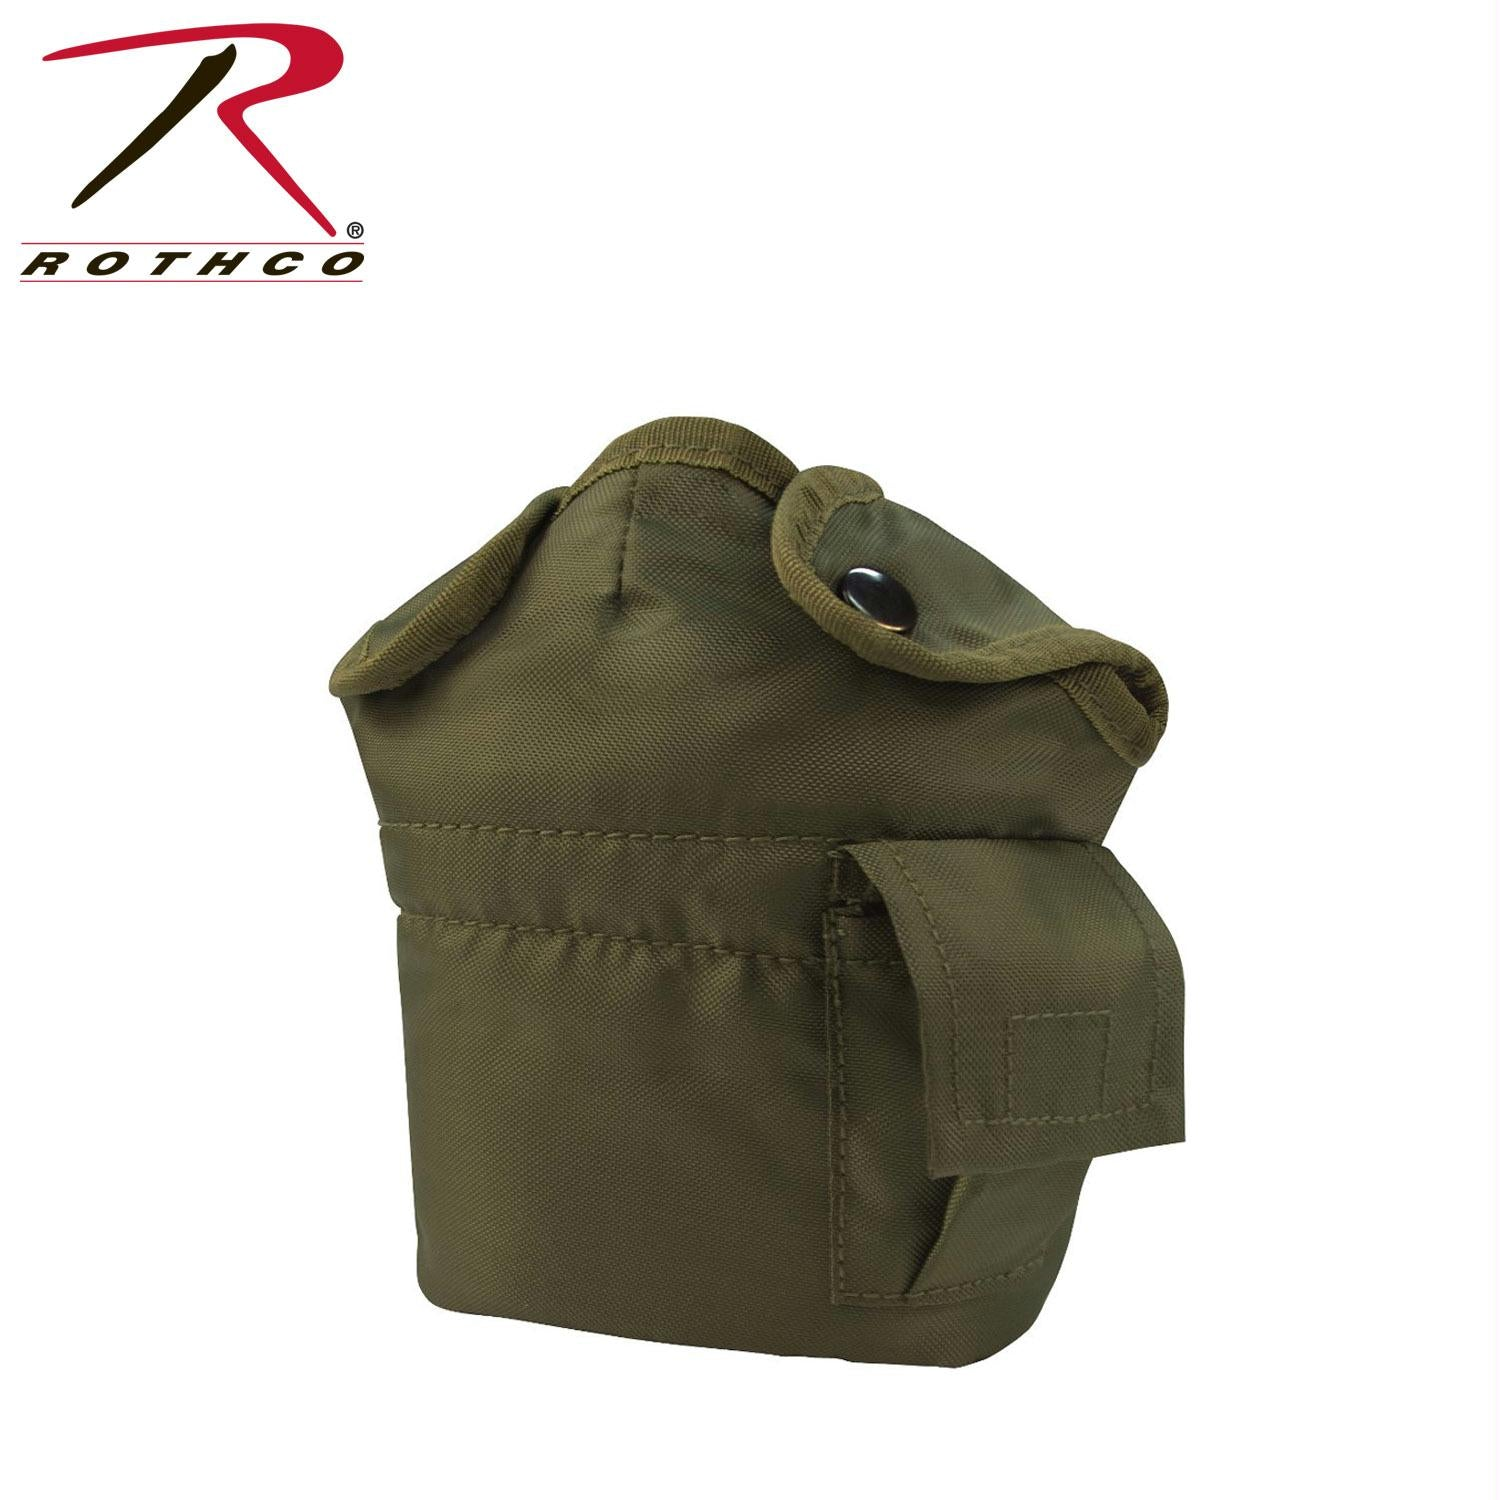 Rothco G.I. Style Canteen Cover - Olive Drab